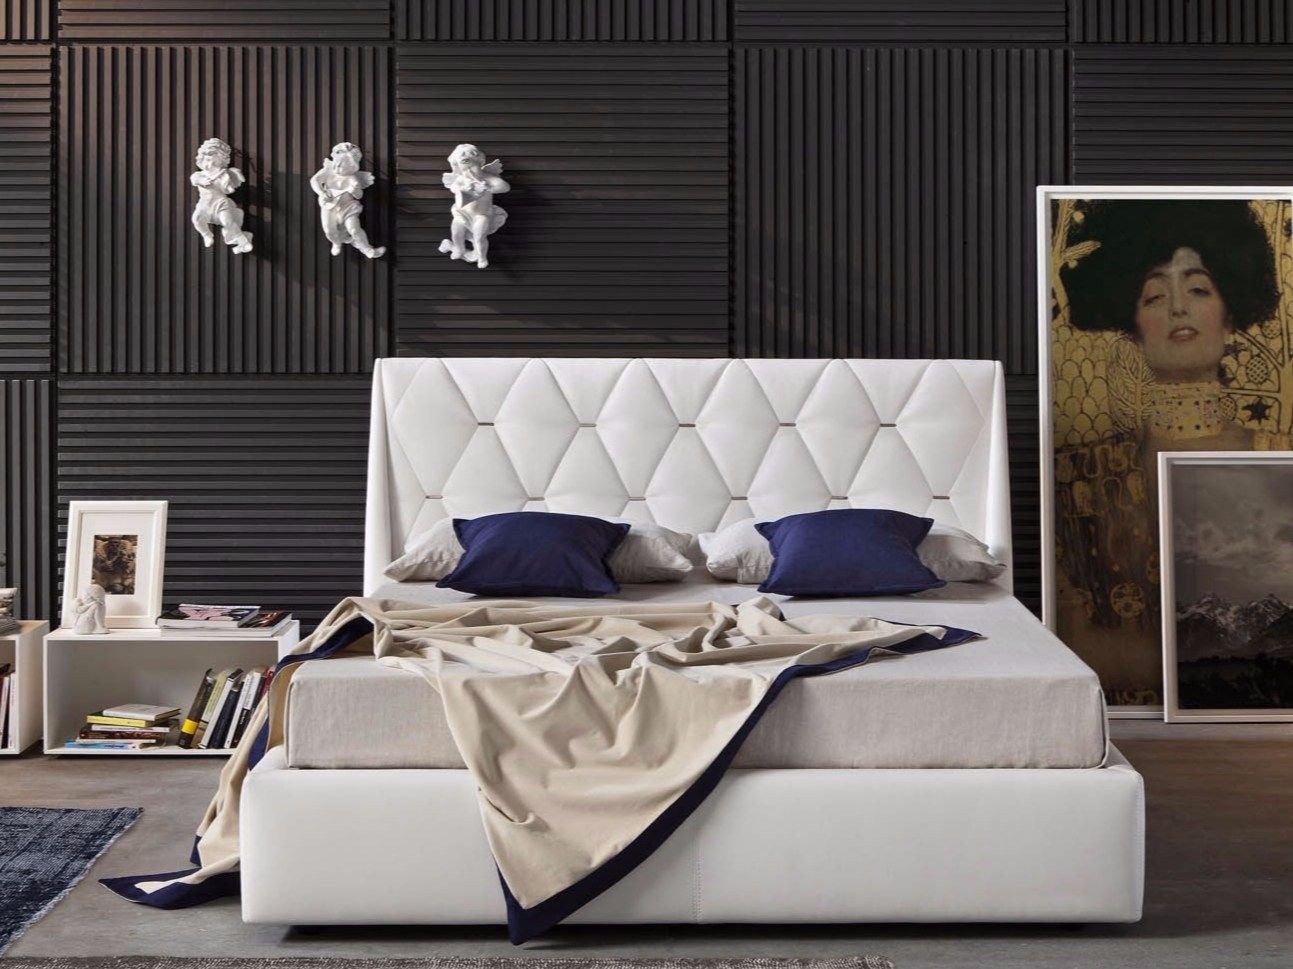 Bed Headboard Designs 165 best 床 images on pinterest | bedroom designs, bed headboards